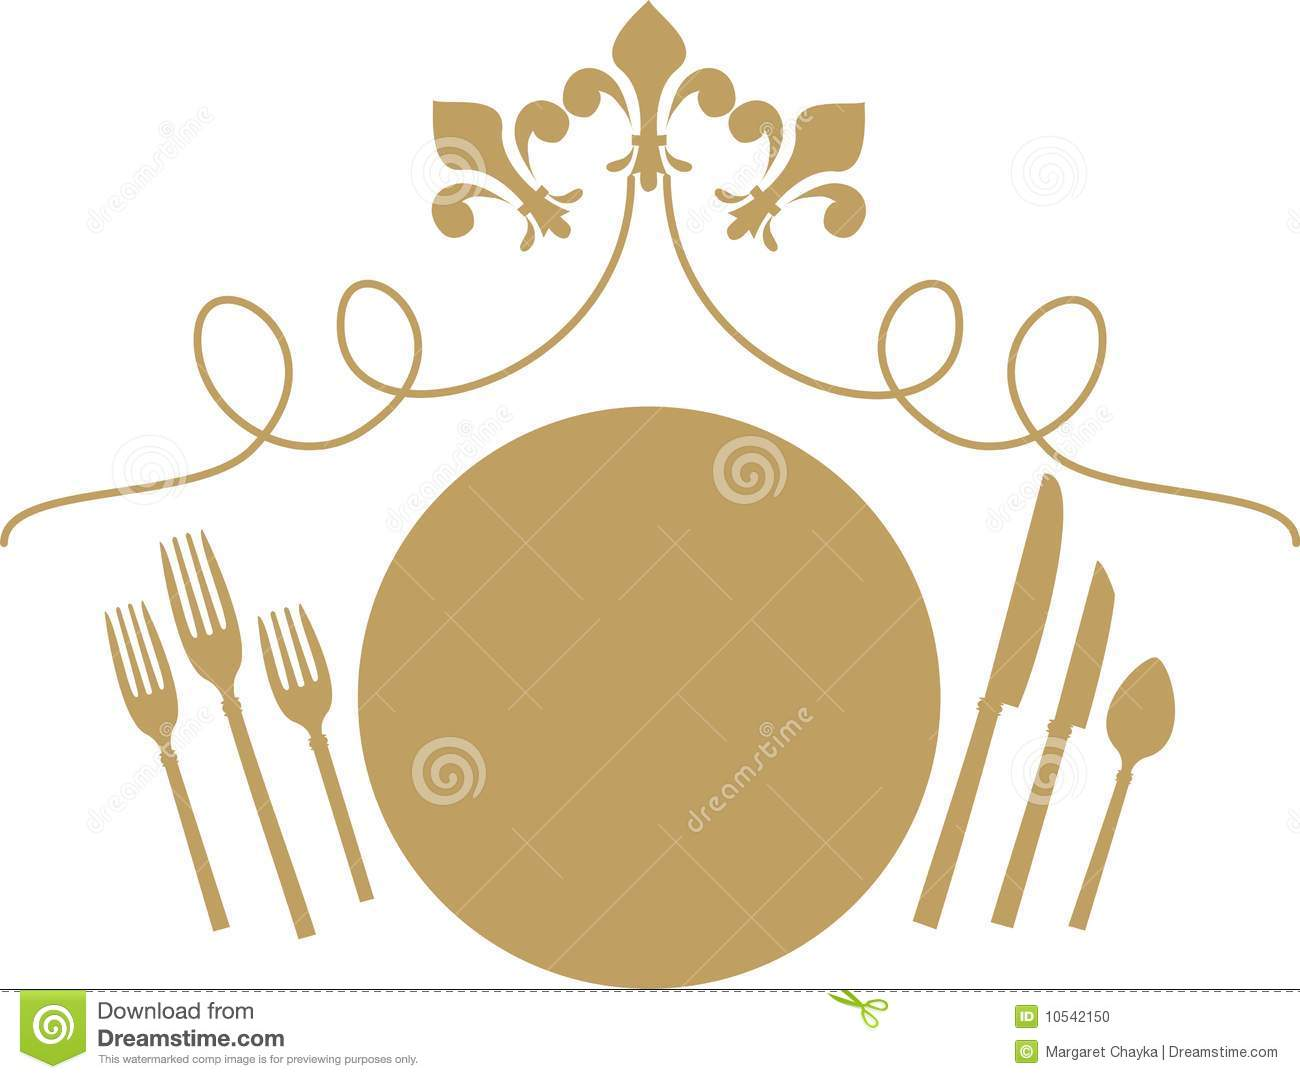 Elegant dinner clipart picture library library Elegant dinner clipart - ClipartFest picture library library